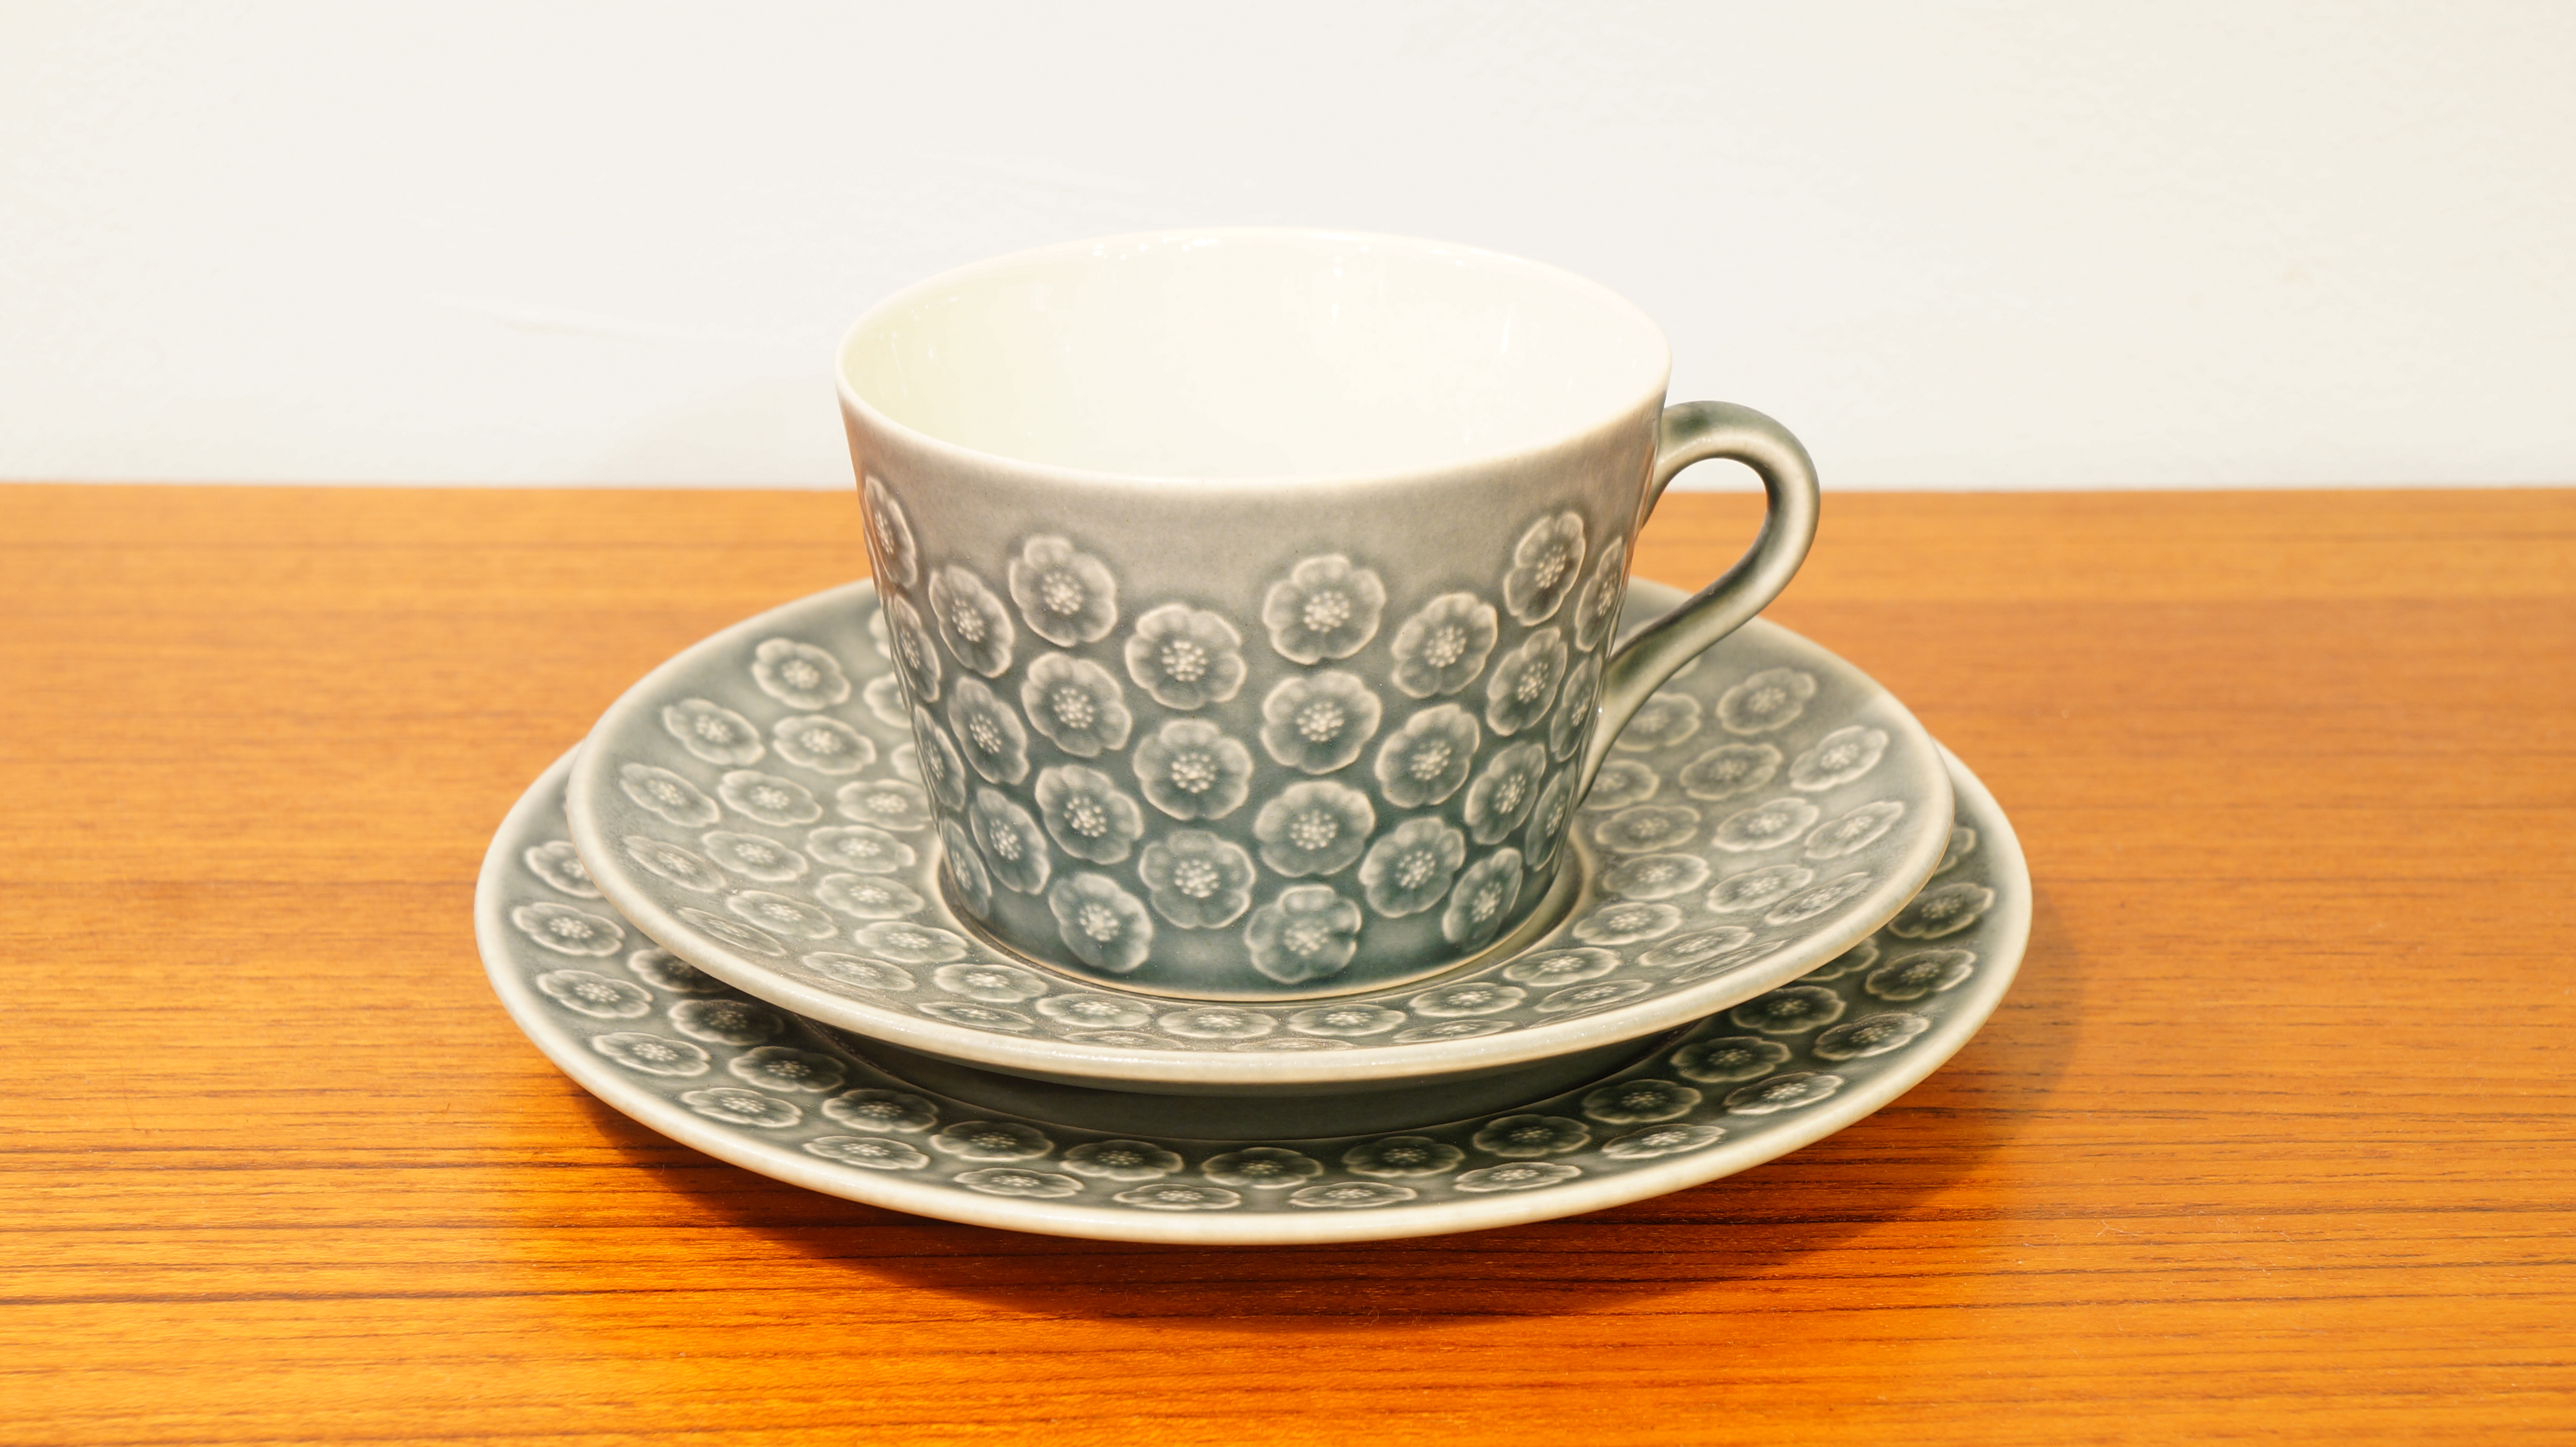 """Kronjyden """"Bla Azur Trio set""""cup&saucer,plate/クロニーデン """"ブルー アズール トリオセット""""カップ&ソーサー"""